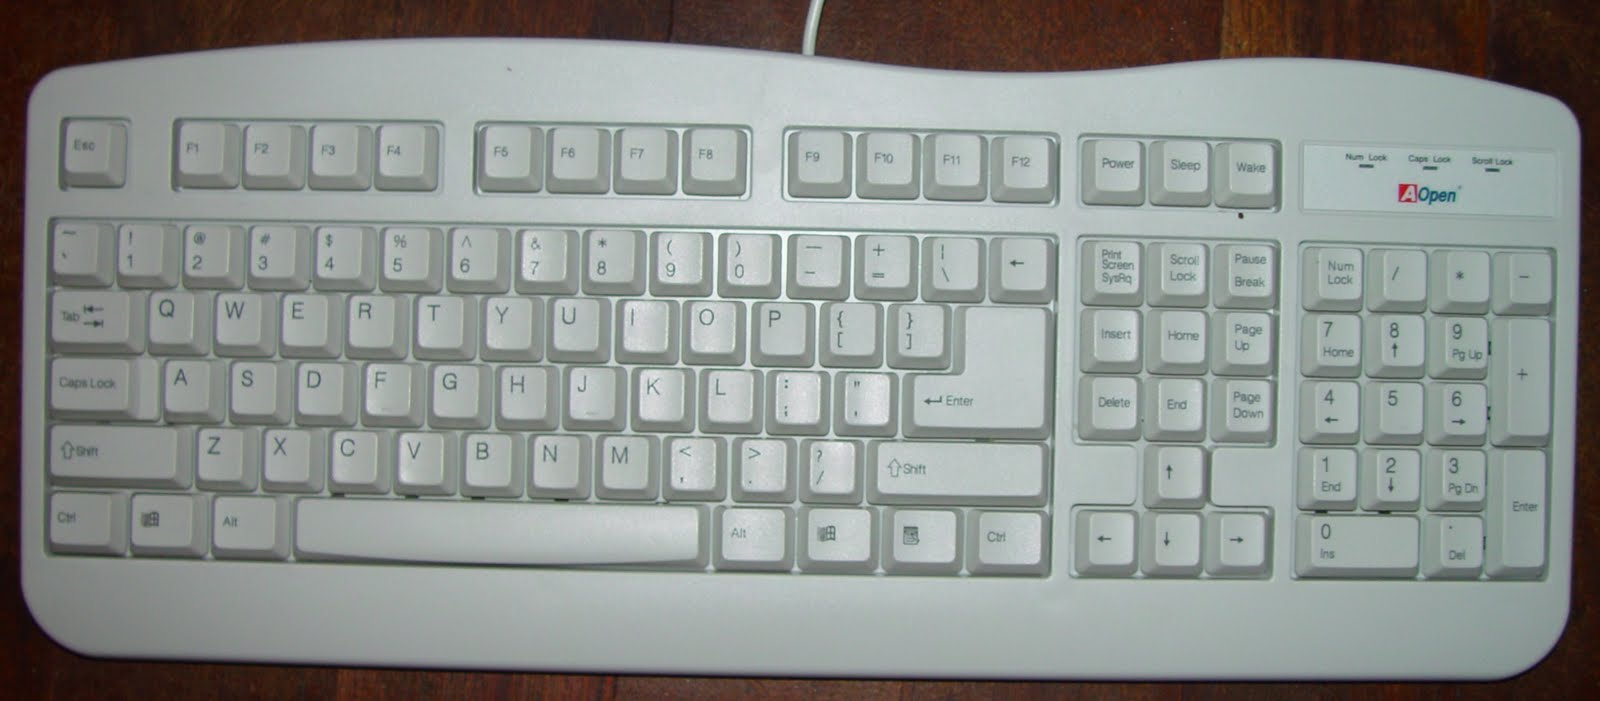 keyboard as an input device